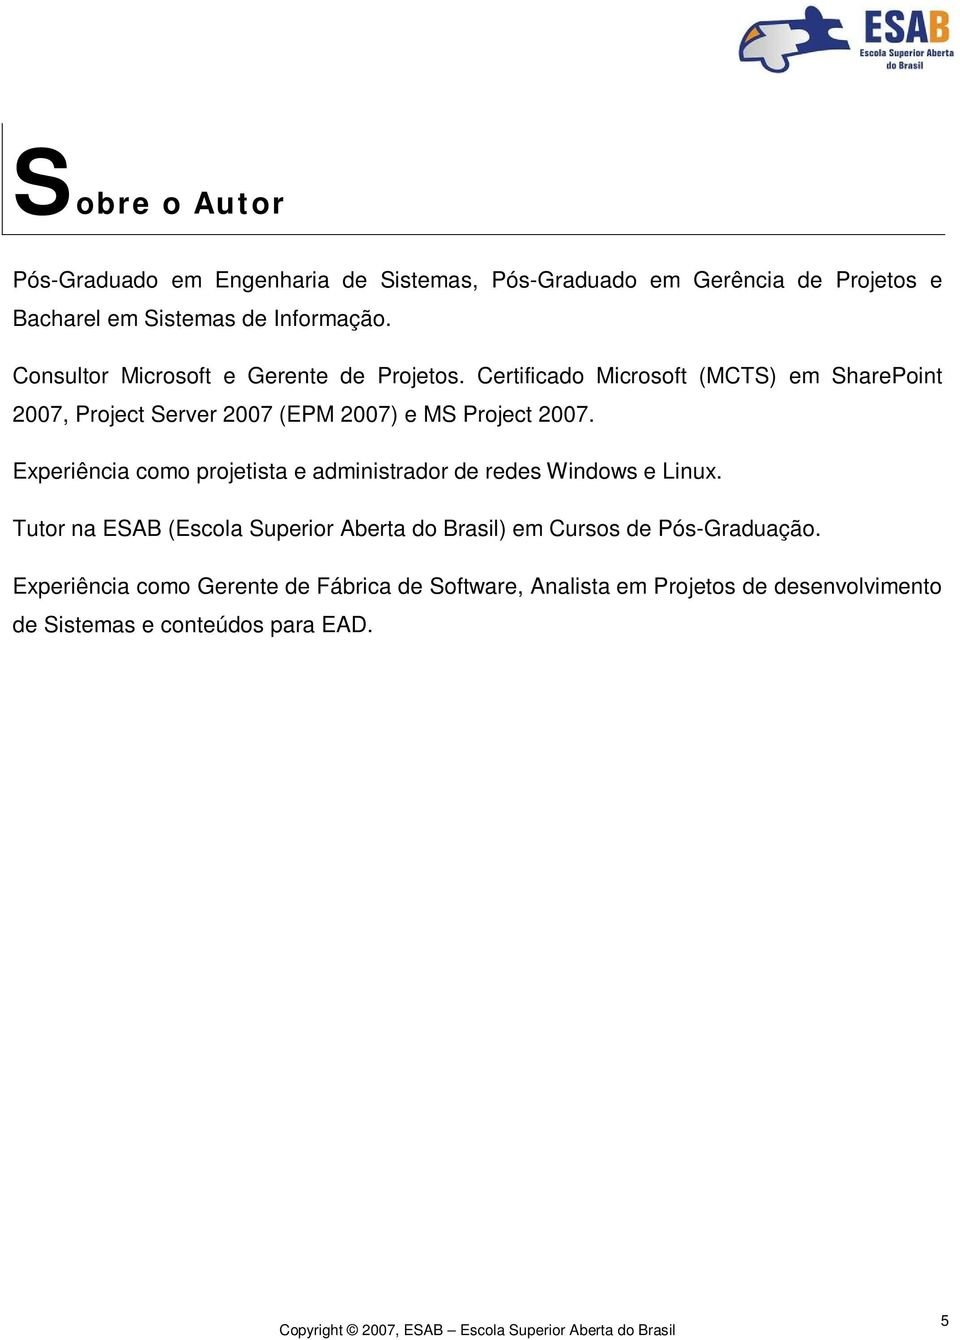 Certificado Microsoft (MCTS) em SharePoint 2007, Project Server 2007 (EPM 2007) e MS Project 2007.